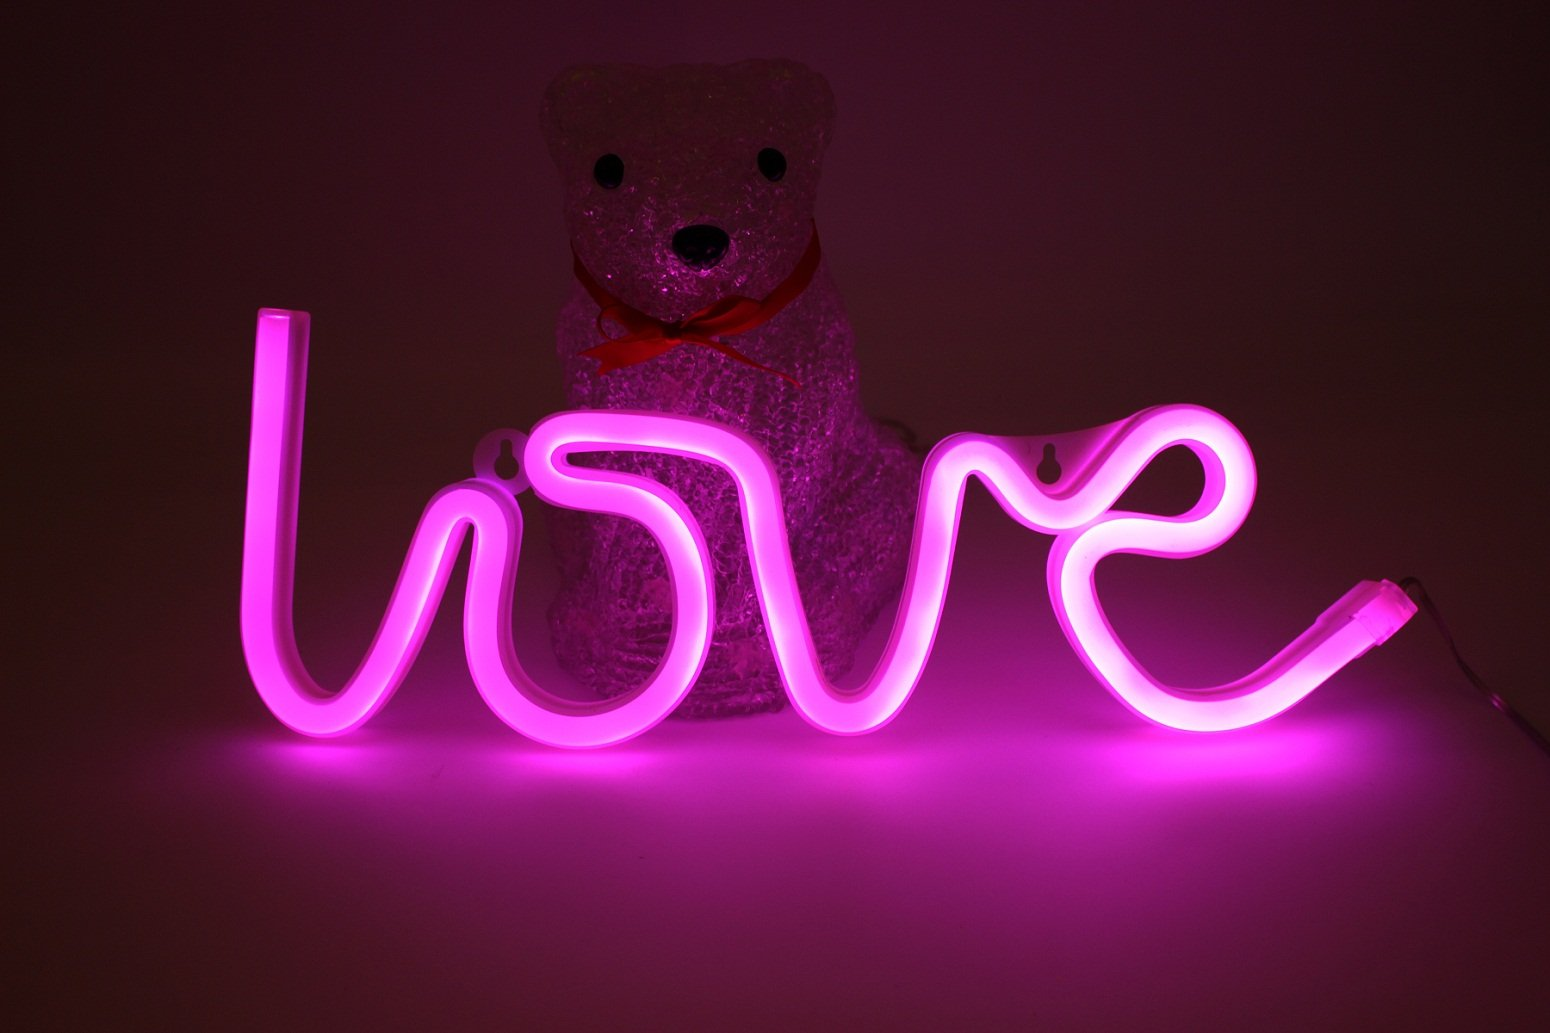 Buy Pink Love Neon Signs Led Light 6 12 Inch Usb Or Battery Powered Decorative Lights For Teen Girls Bedroom Bar Pub Hotel Party Kids Home Dorm Aesthetic Room Wall Decor In Cheap